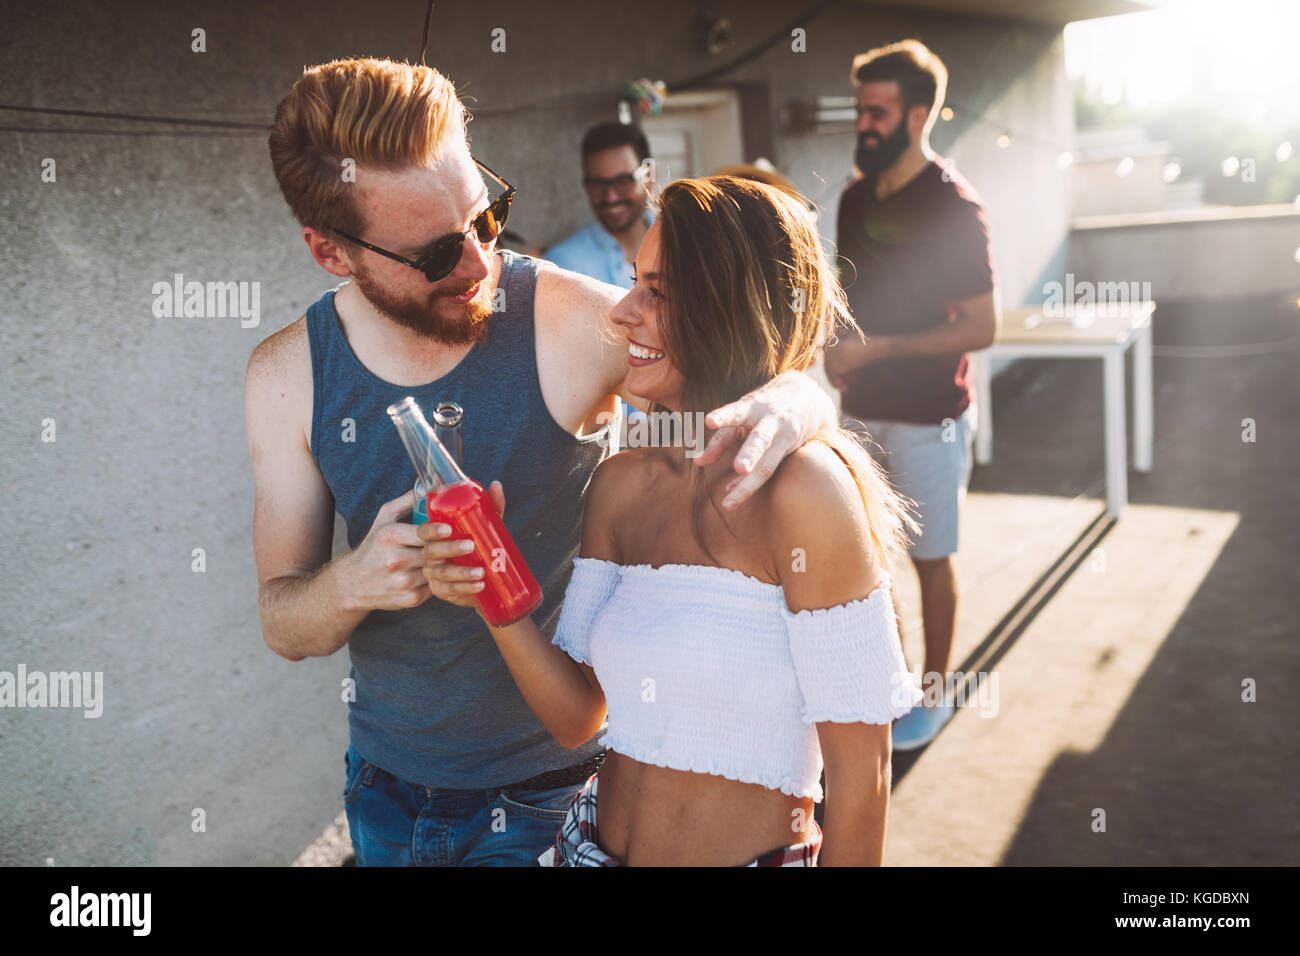 Happy couple having fun time at party - Stock Image